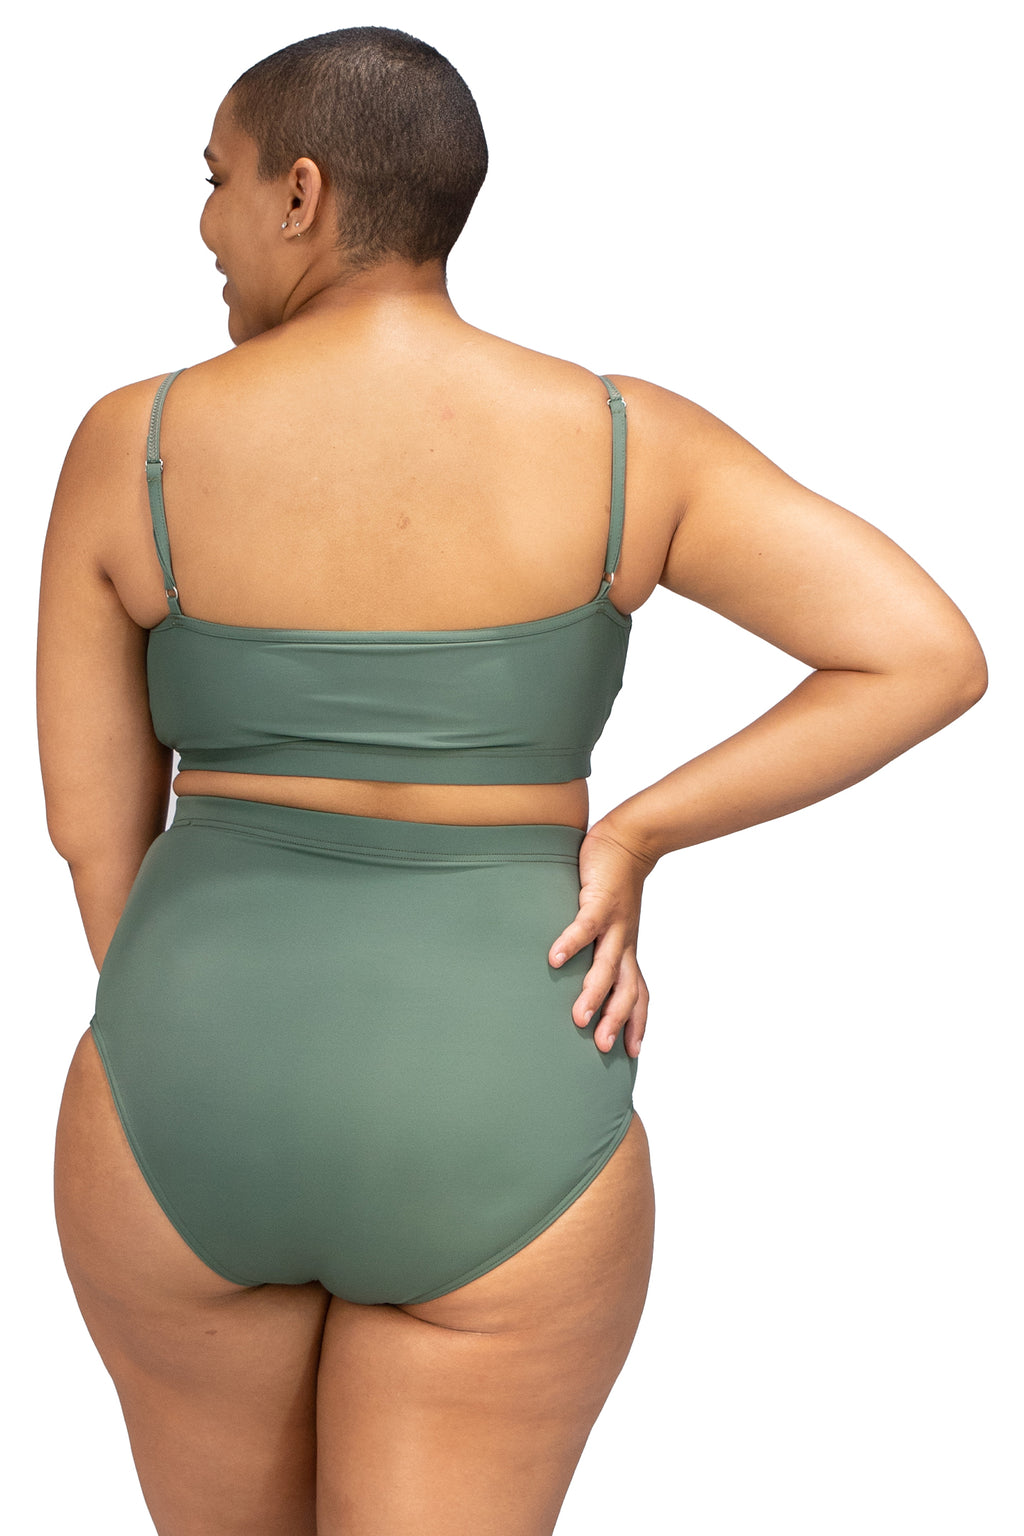 Bondi Brief - Olive High Waisted Bottoms